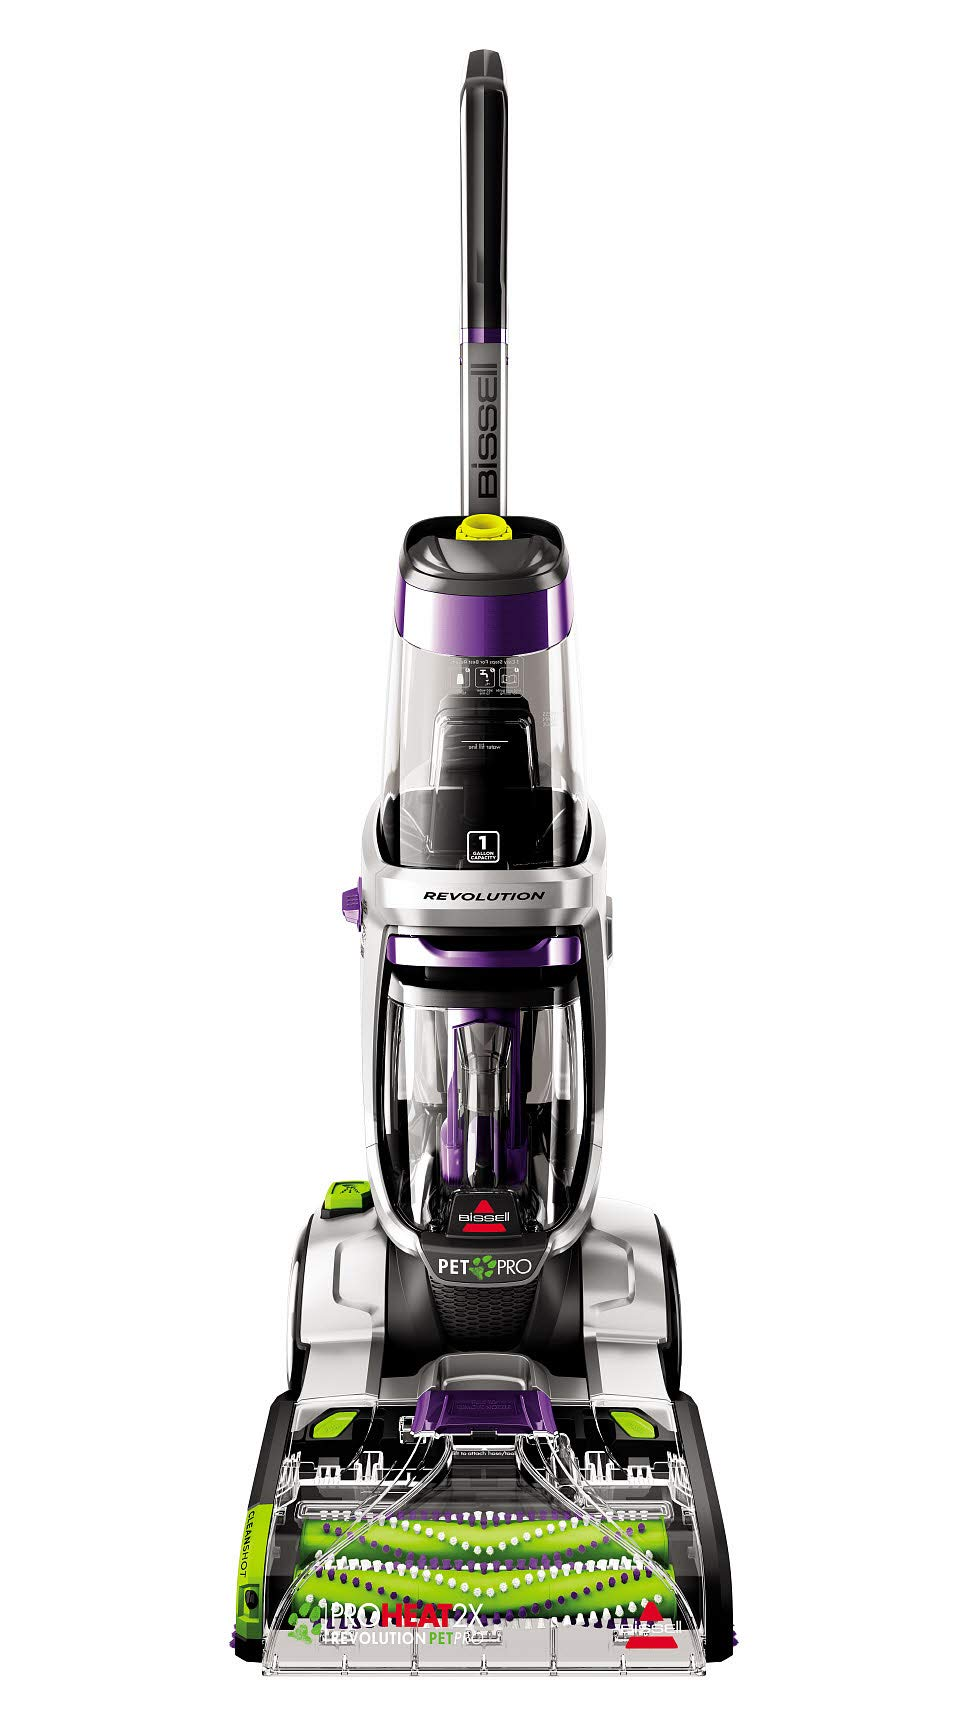 BISSELLProHeat 2X Revolution Max Clean Pet Pro Full-Size Carpet Cleaner, 1986,Sparkle Silver with Grapevine Purple Accents